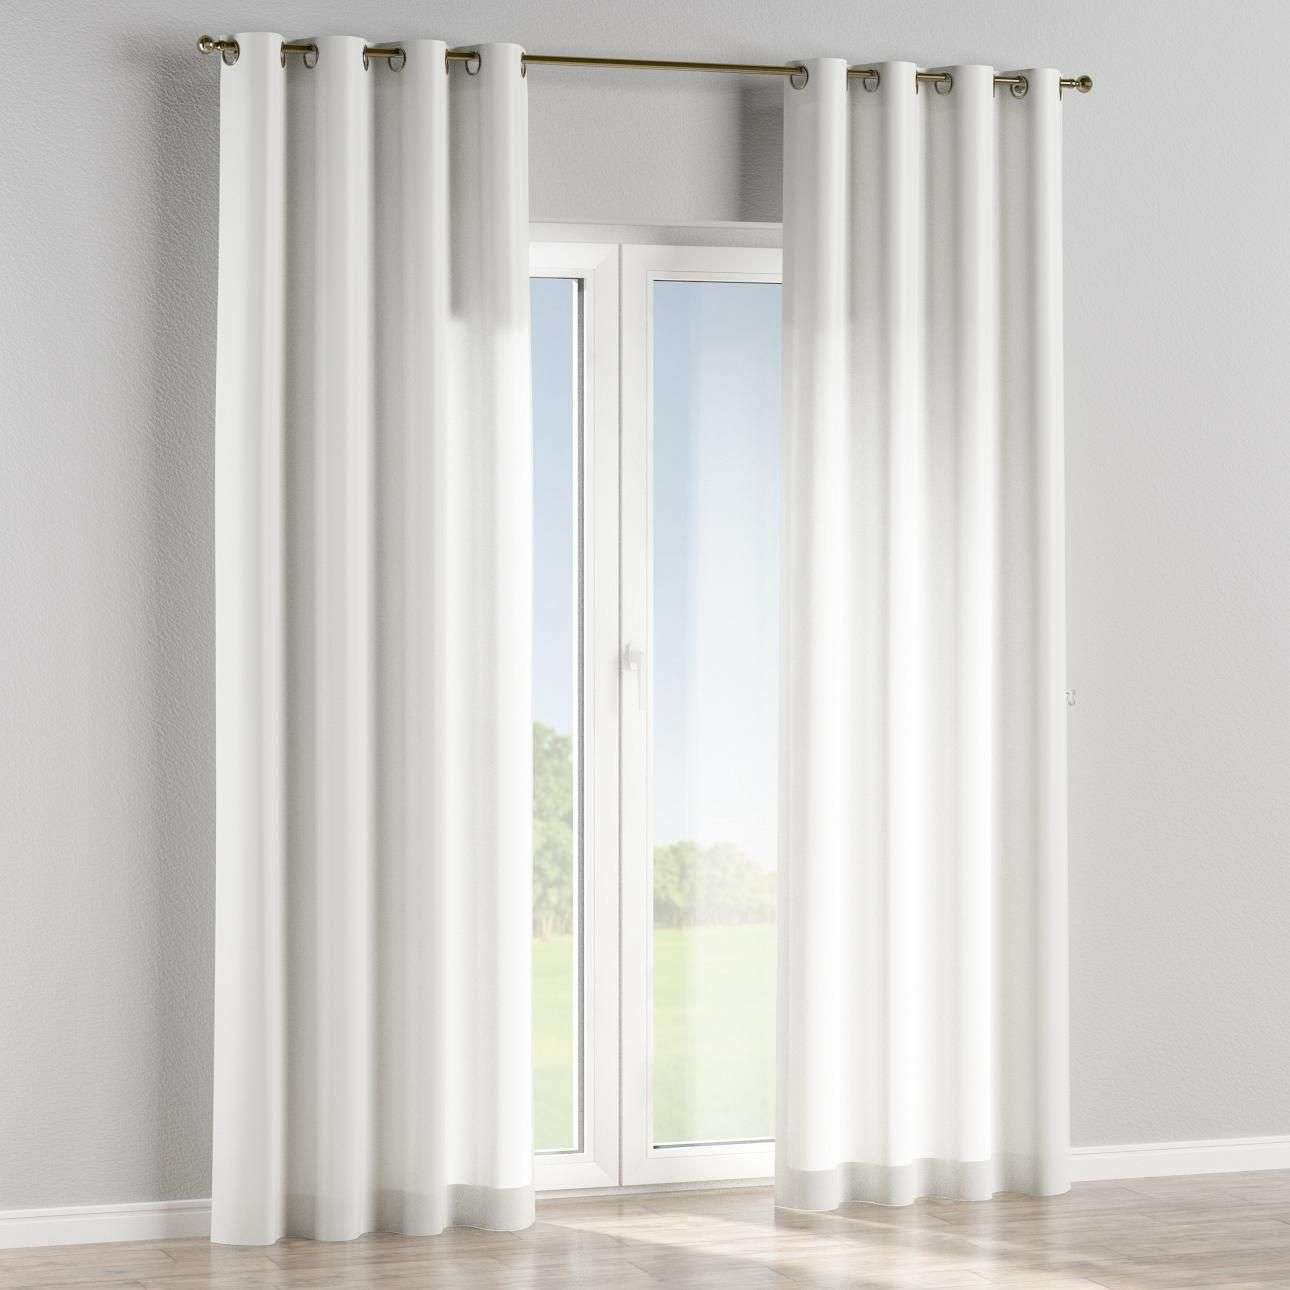 Eyelet curtains in collection Londres, fabric: 140-43